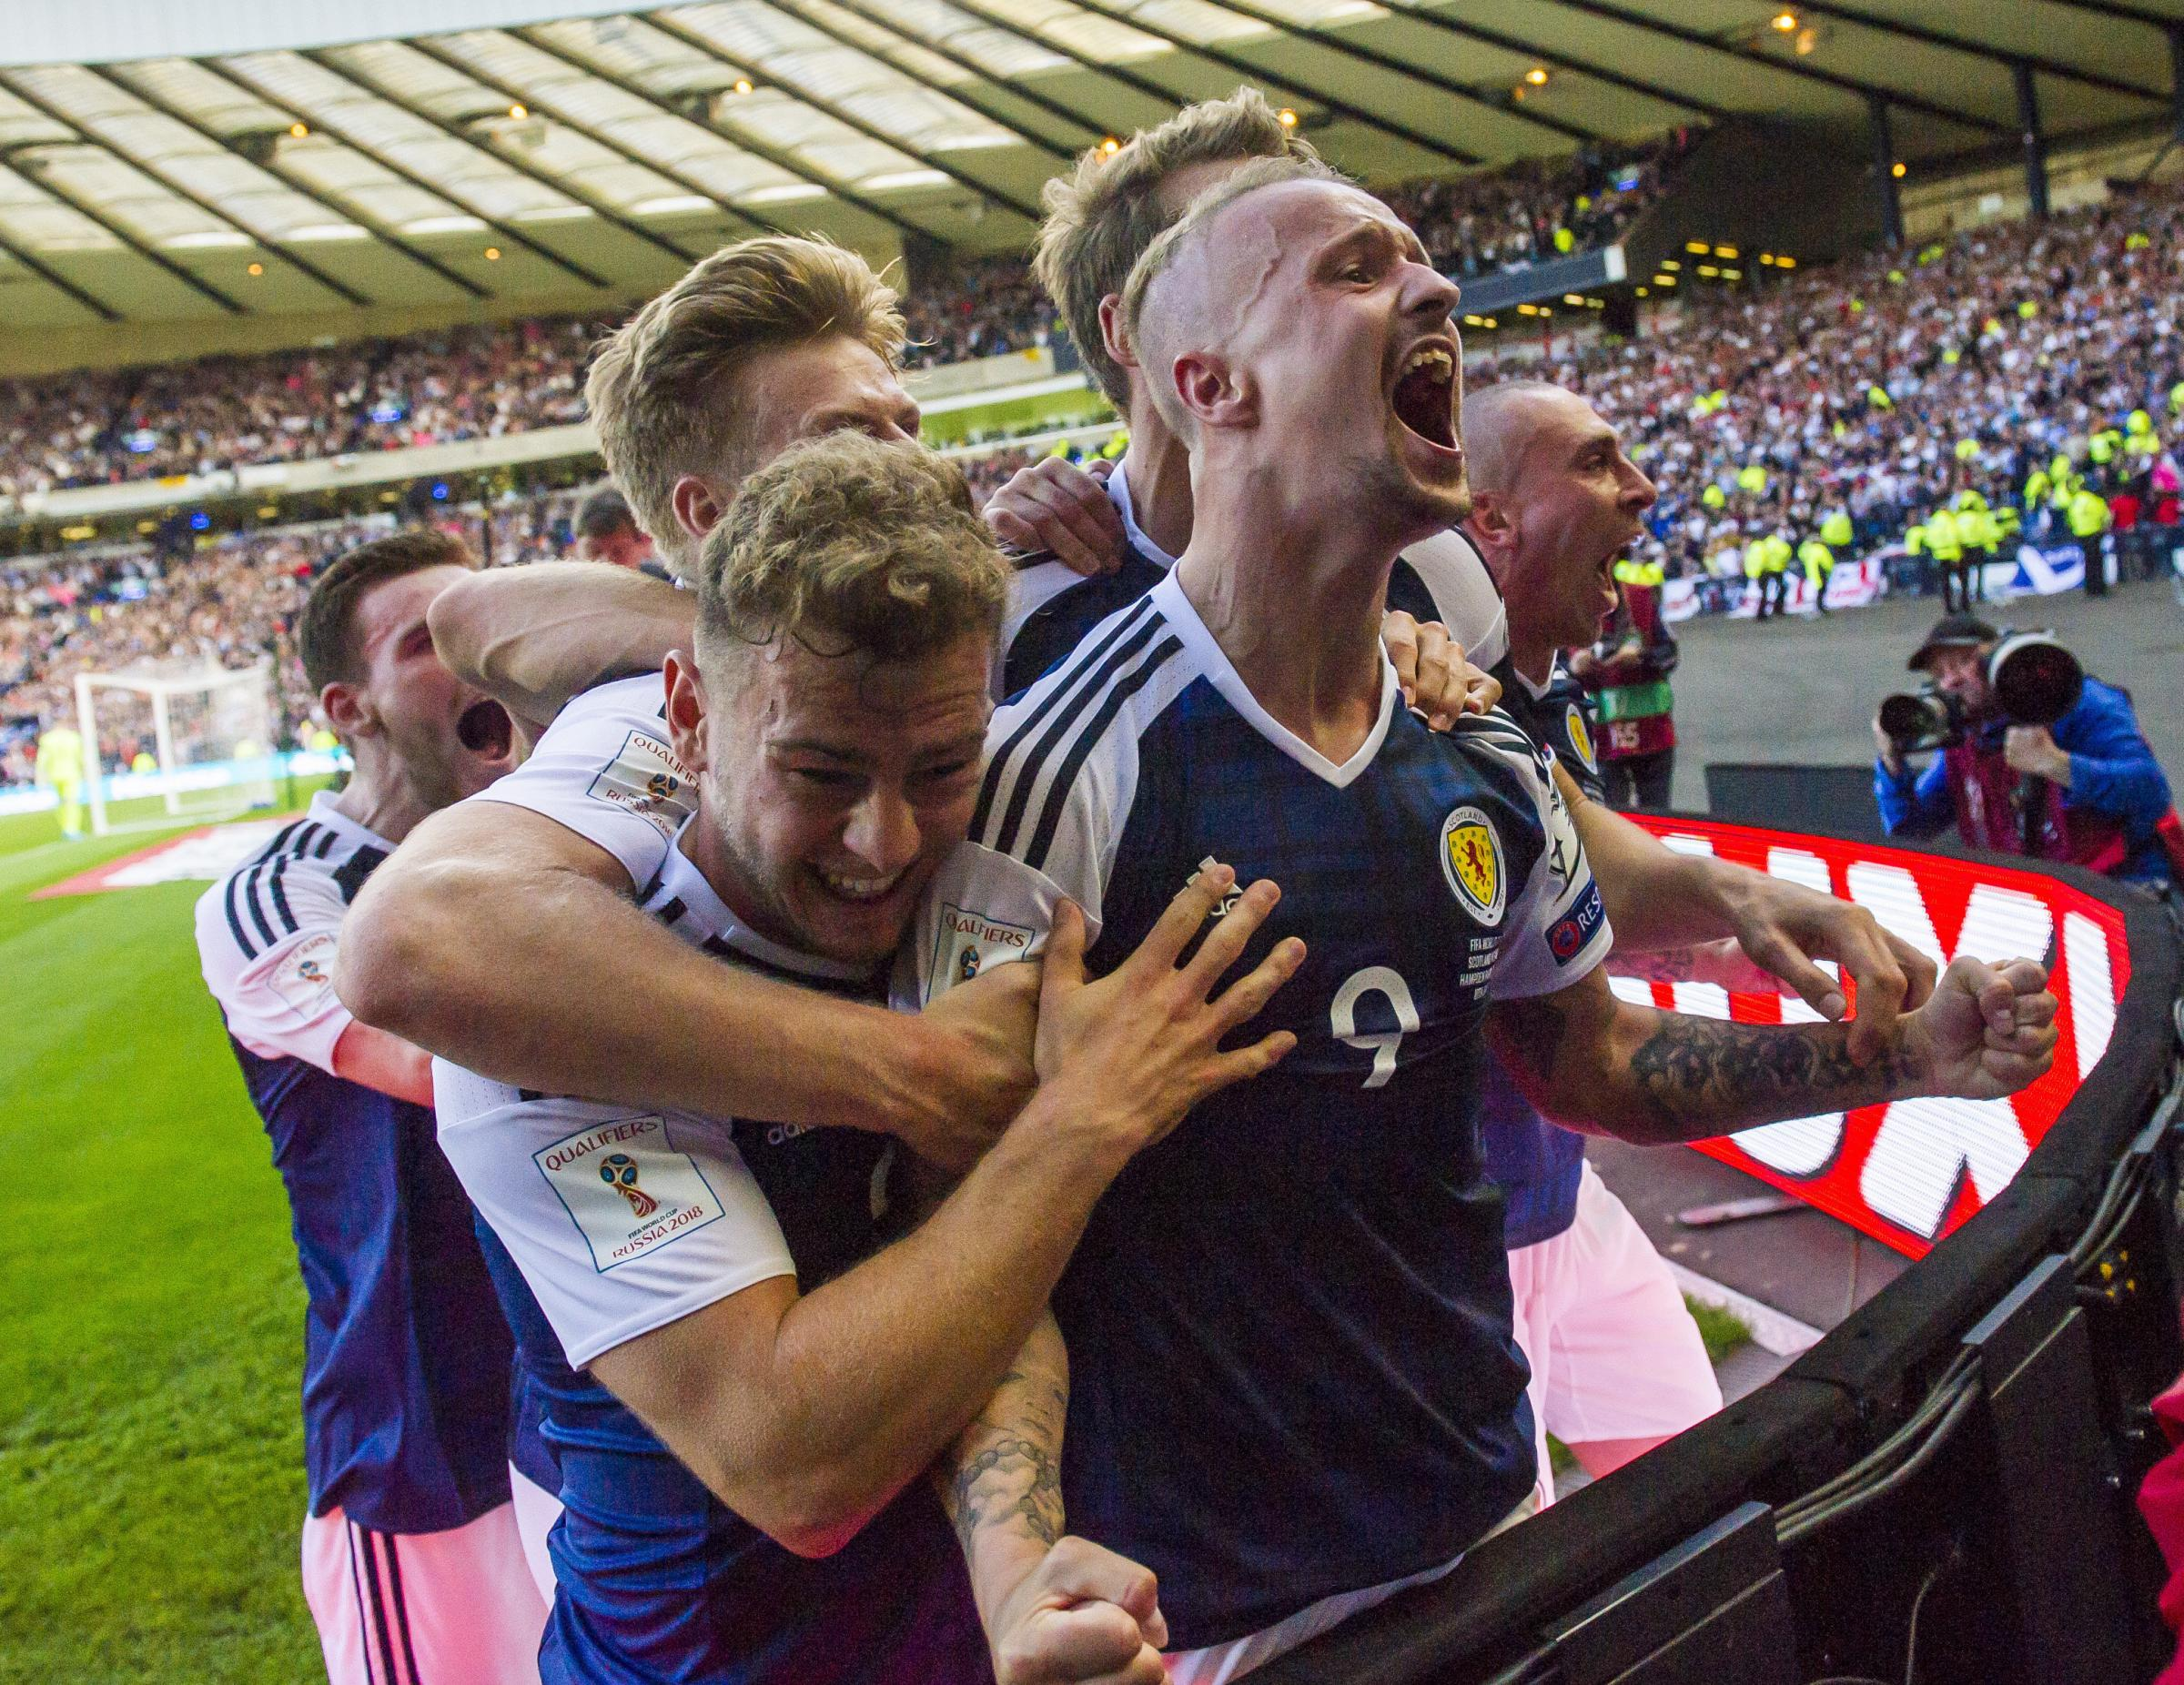 Scotland to face Belgium in friendly ahead of UEFA Nations League kick-off